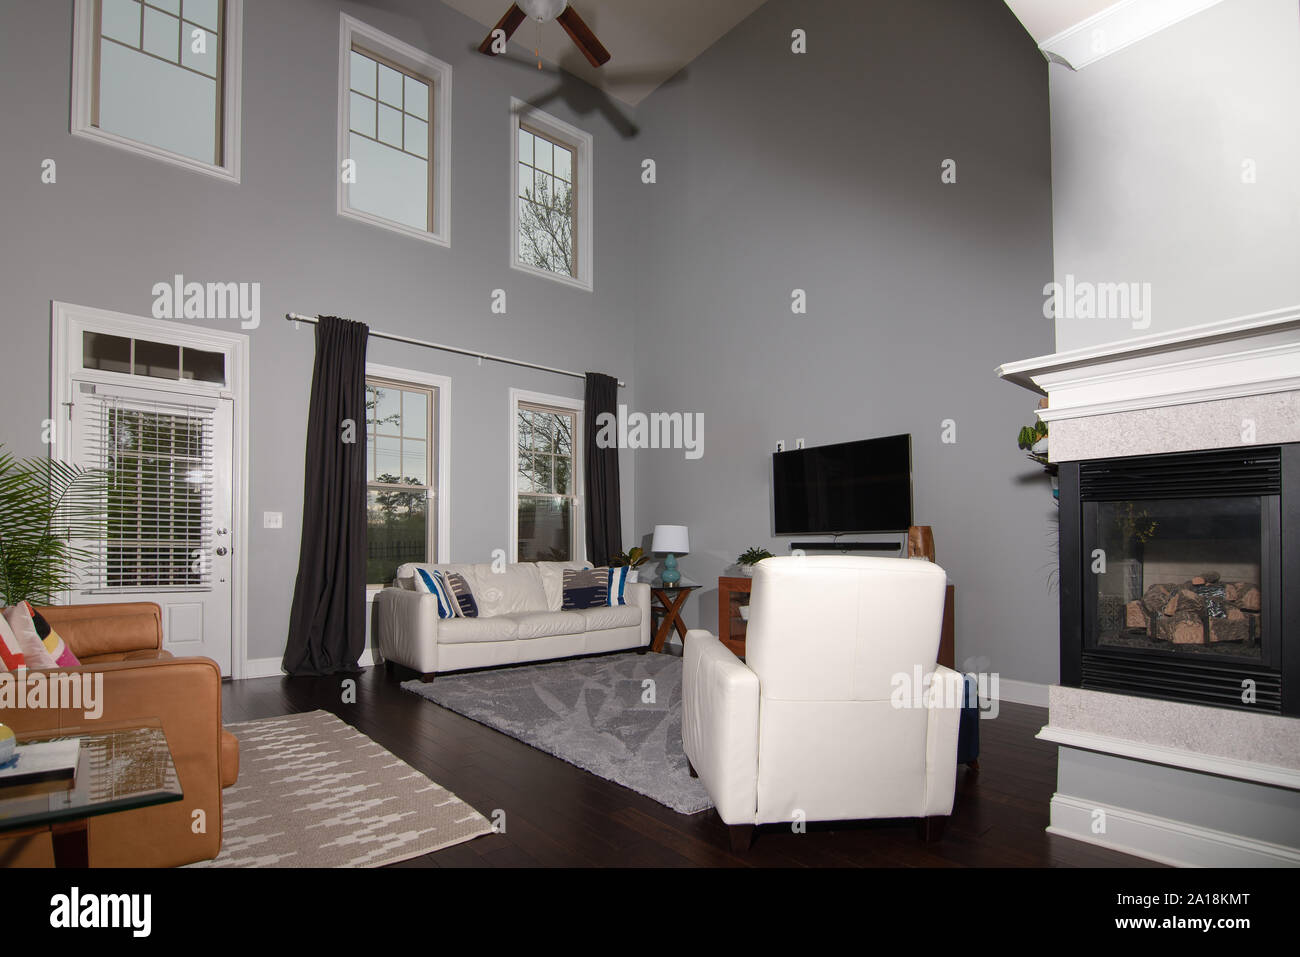 Middle Class Living Room High Resolution Stock Photography And Images Alamy